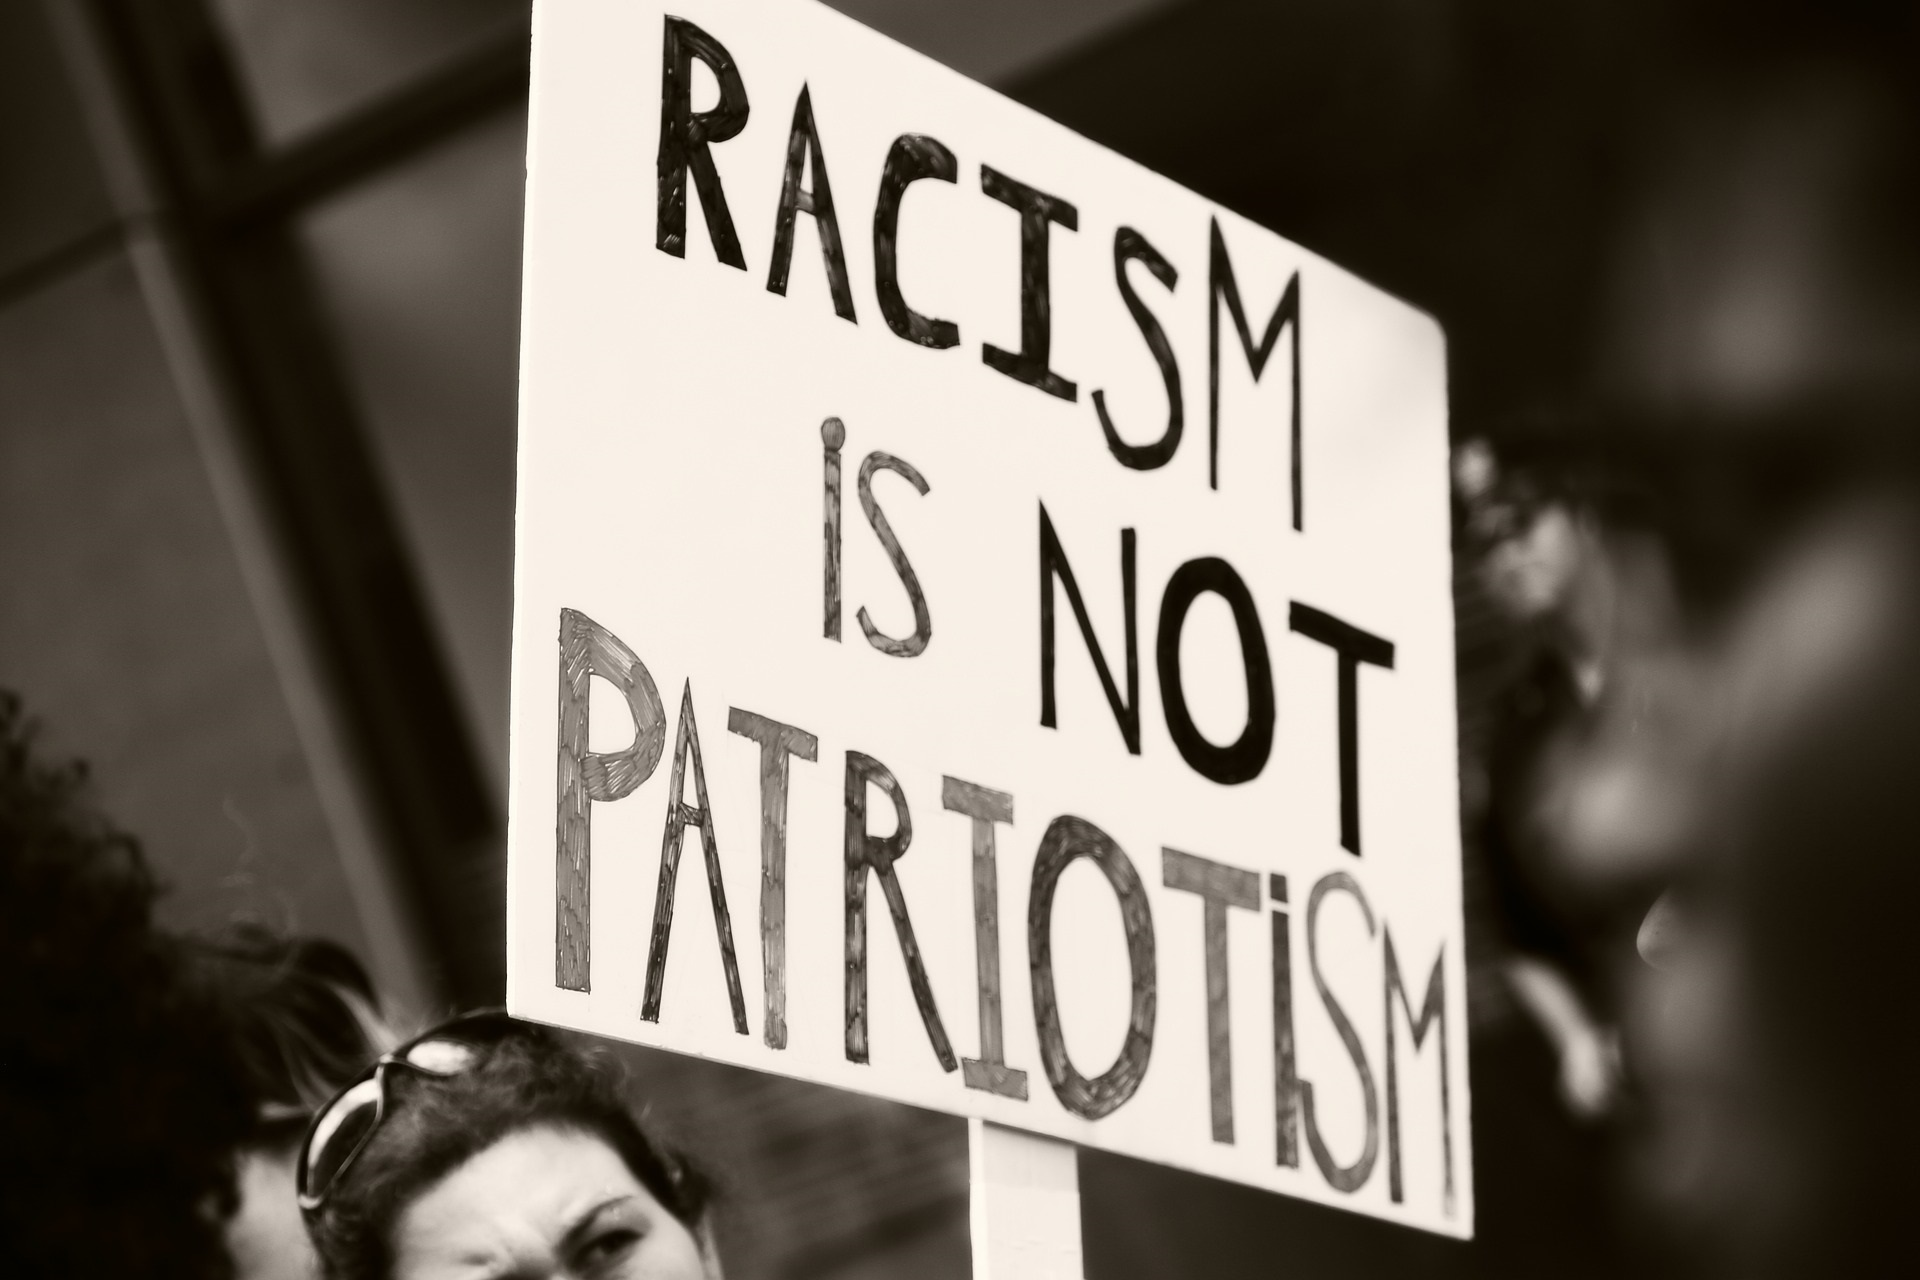 Racism is not Patriotism protest sign